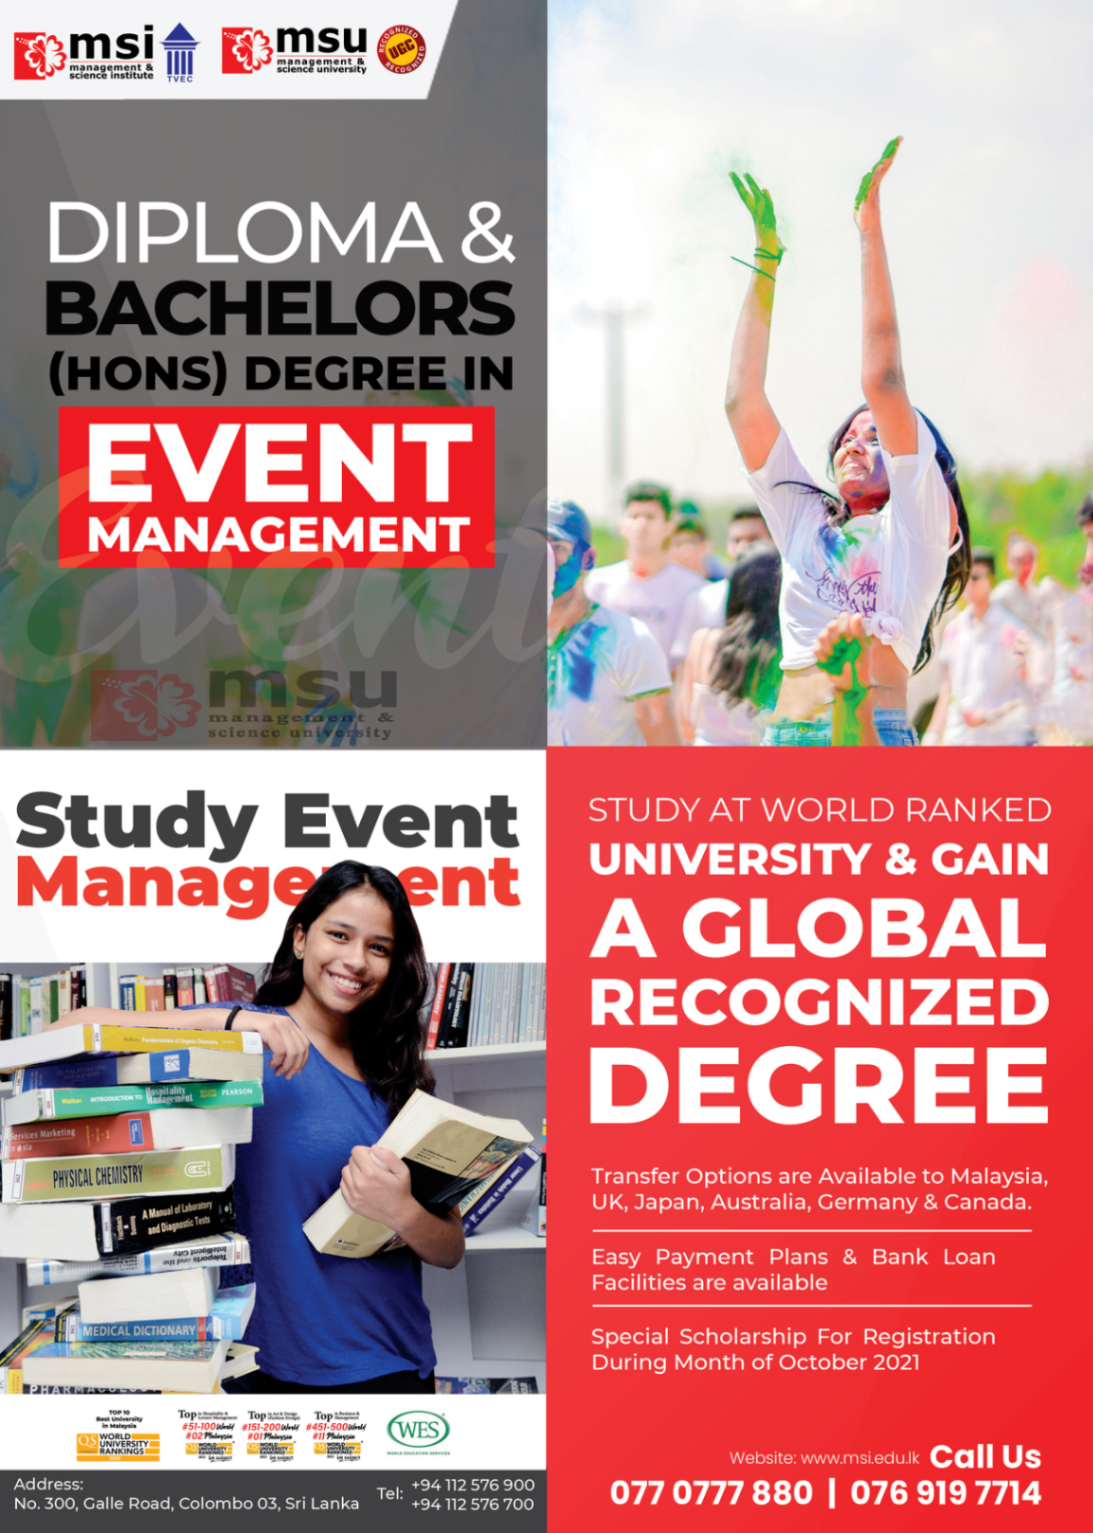 Diploma & Bachelors (HONS) Degree in Event Management